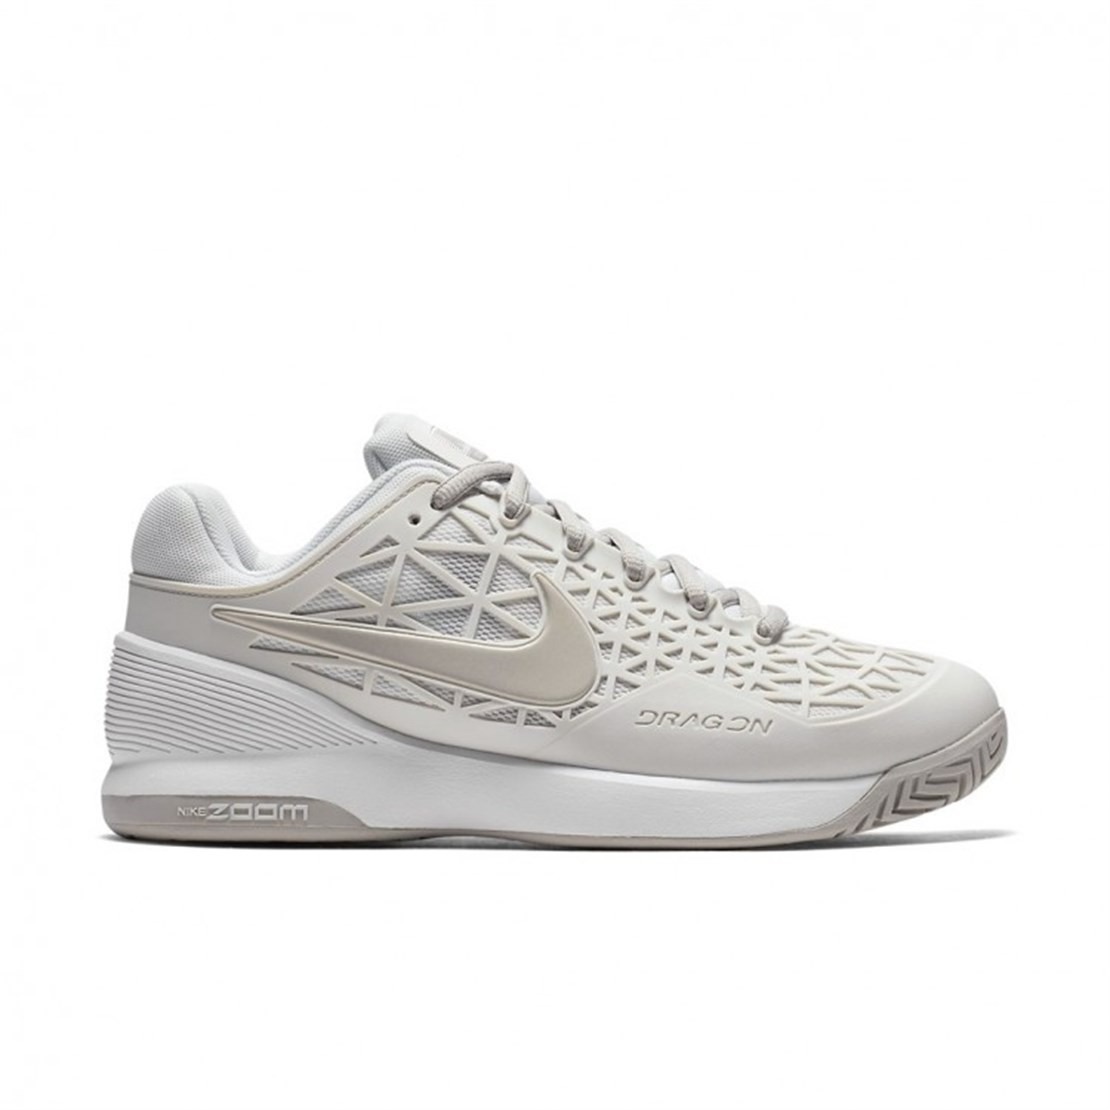 reasonably priced timeless design authorized site Wmns Nike Zoom Cage 2